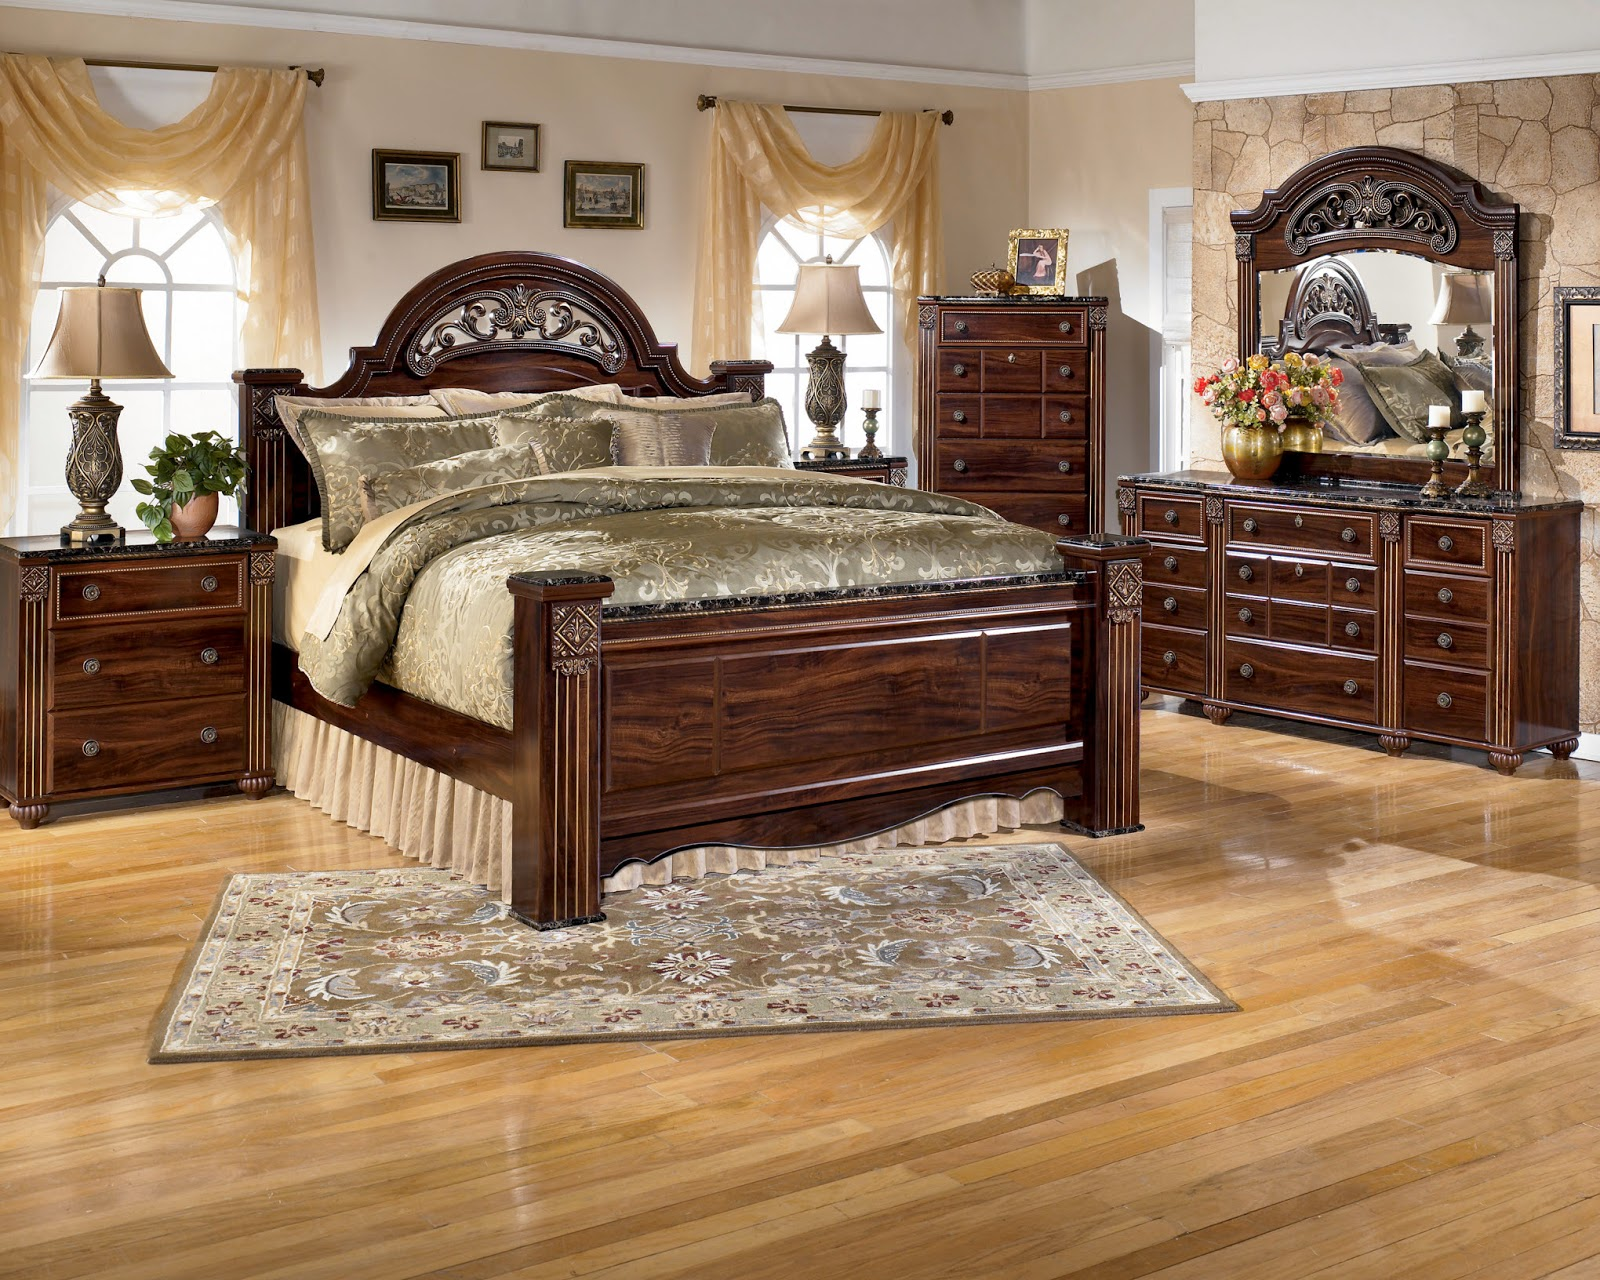 Bedroom Furniture Set Of Ashley Furniture Bedroom Sets On Sale Bedroom Furniture